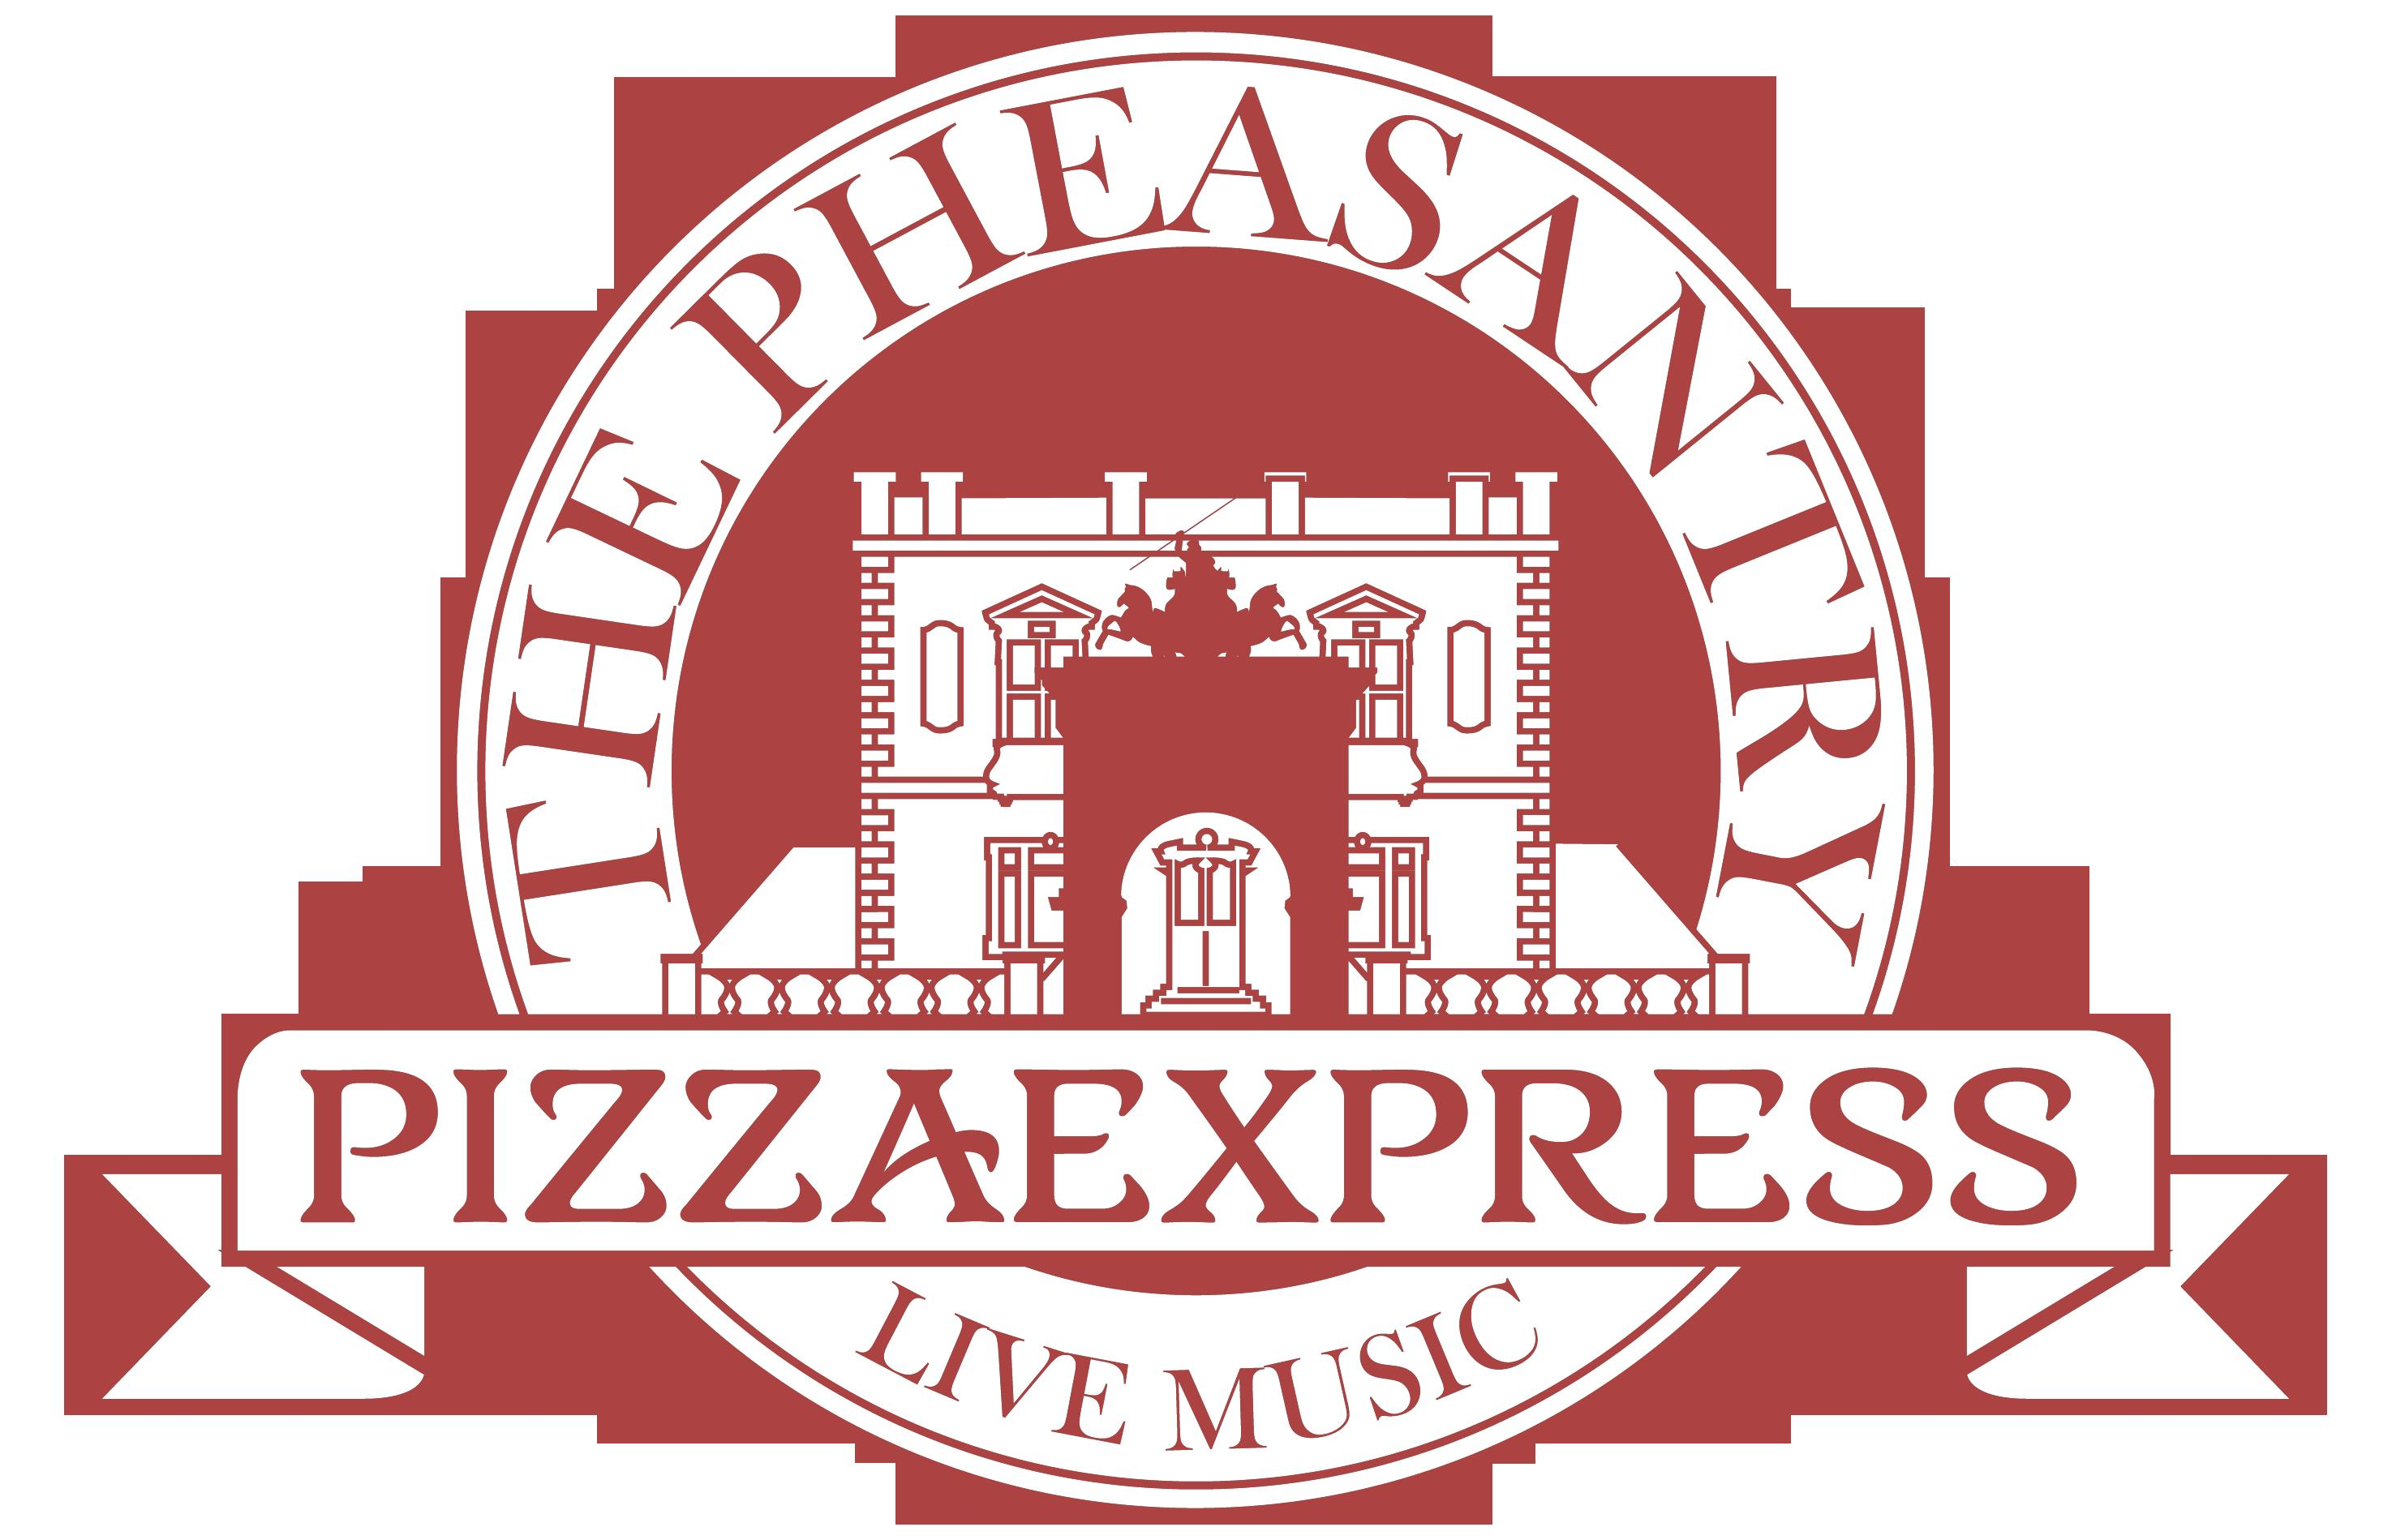 PHEASANTRY-LOGO-New